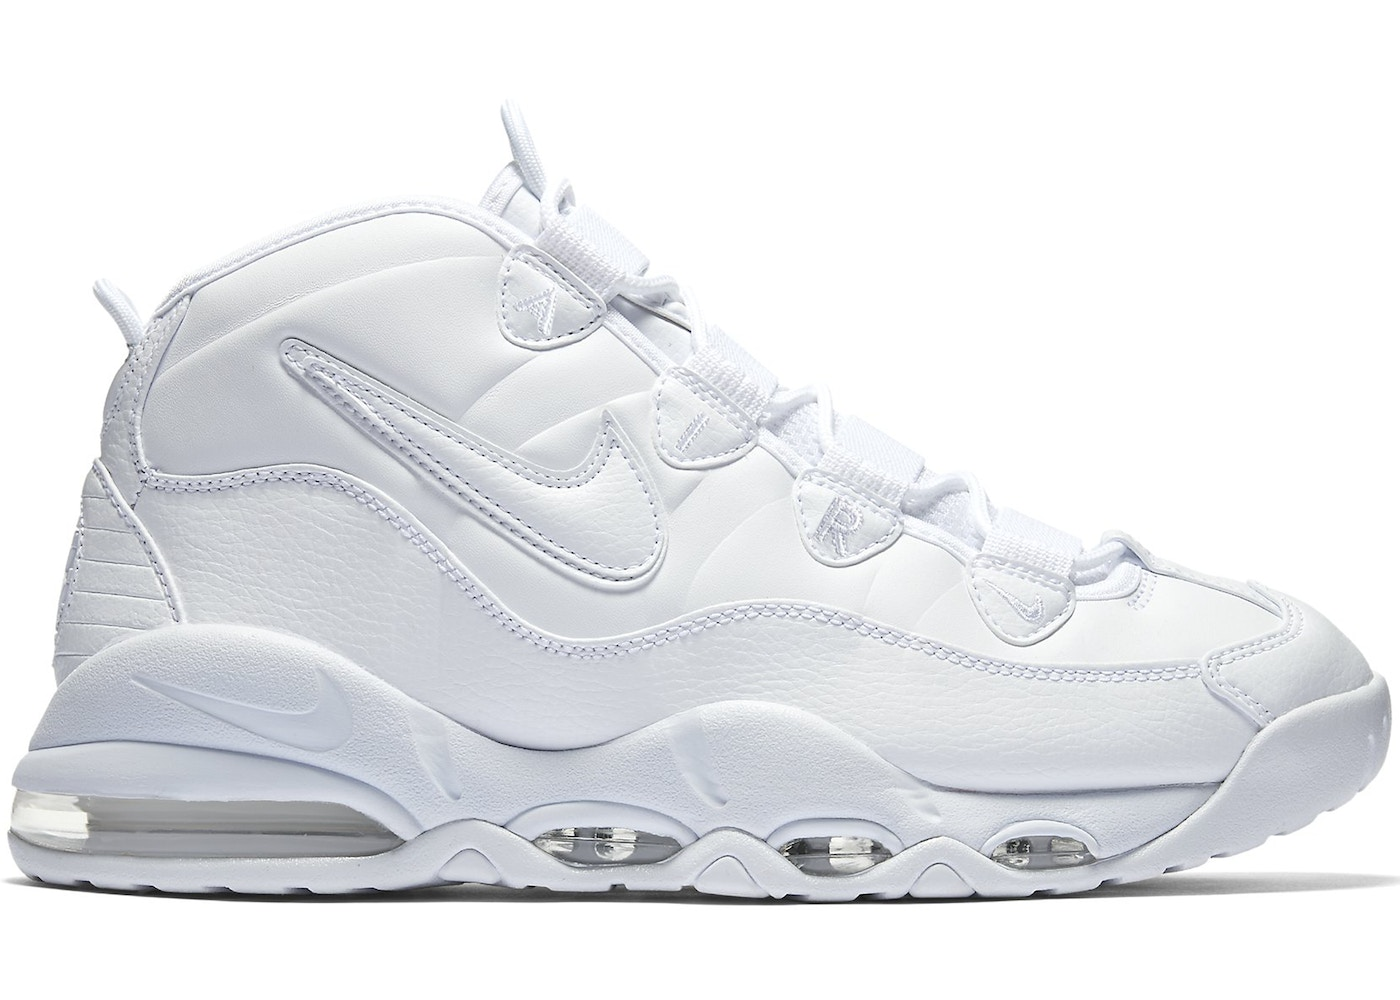 cc85a49eb5 15 Reasons to/NOT to Buy Nike Air Max Uptempo 95 (August 2018) | RunRepeat